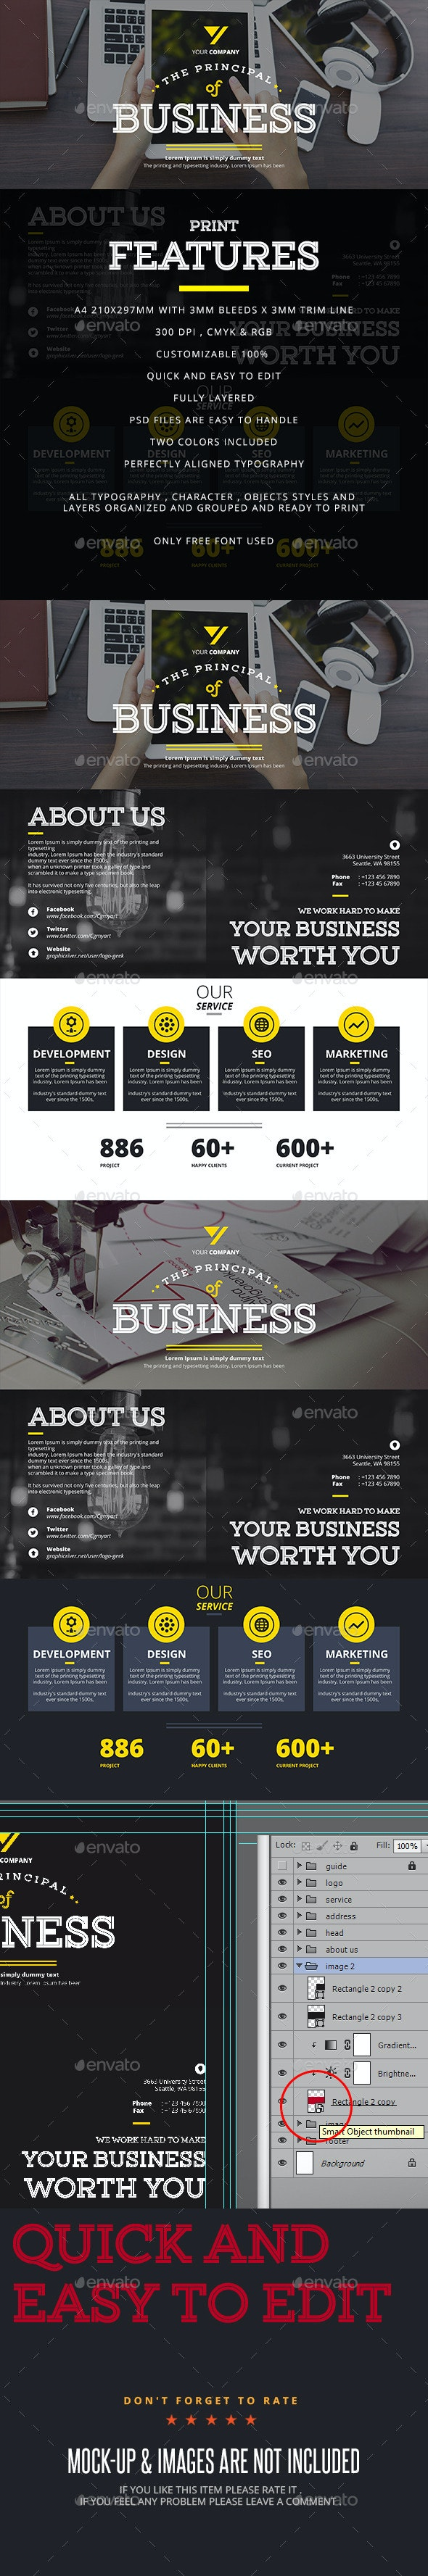 Business Corporate Flayer - Corporate Flyers